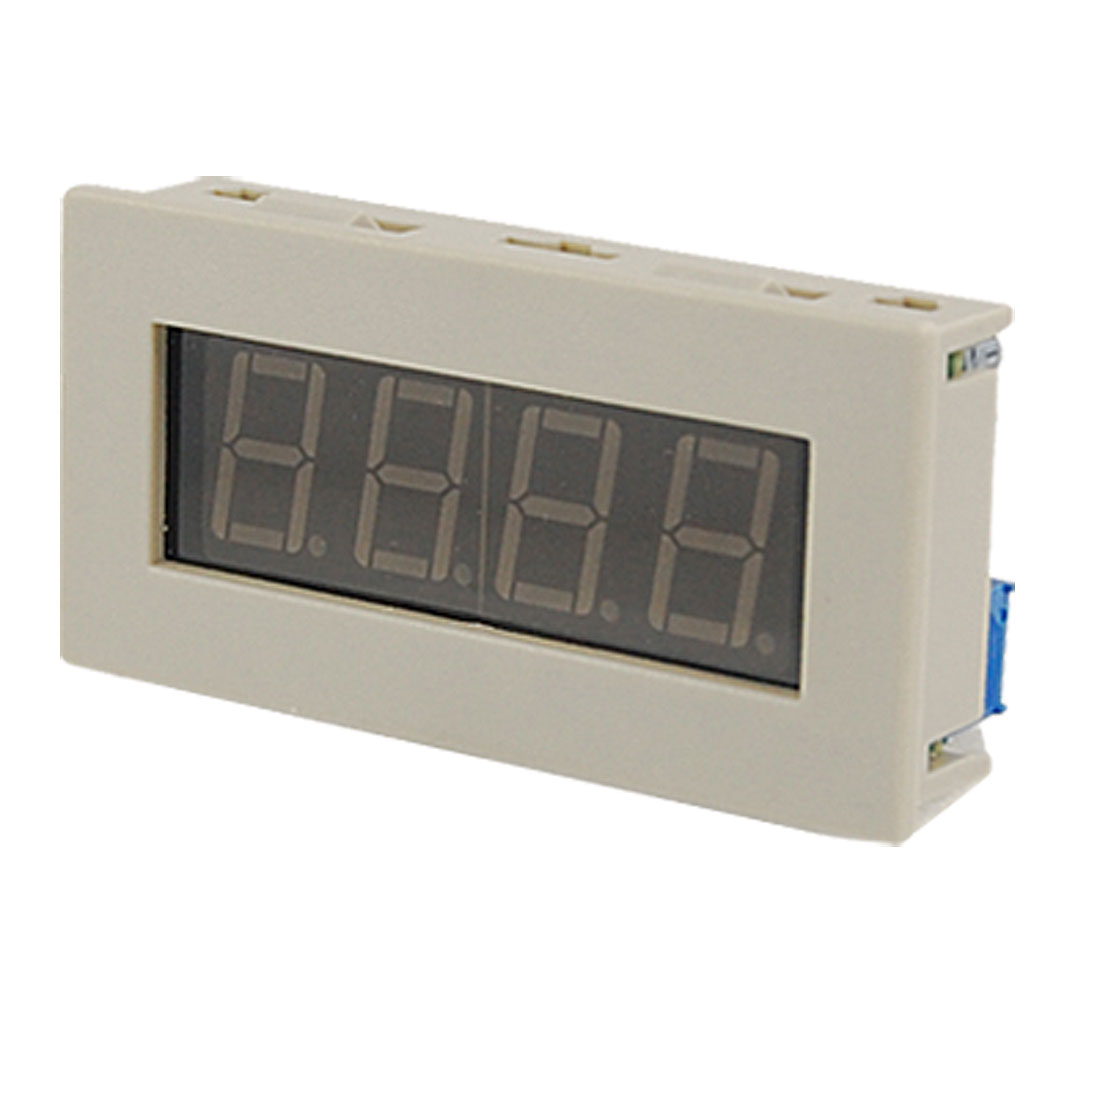 DC 0-199.9mA 3 1/2 Digital Display Amperemeter Panel